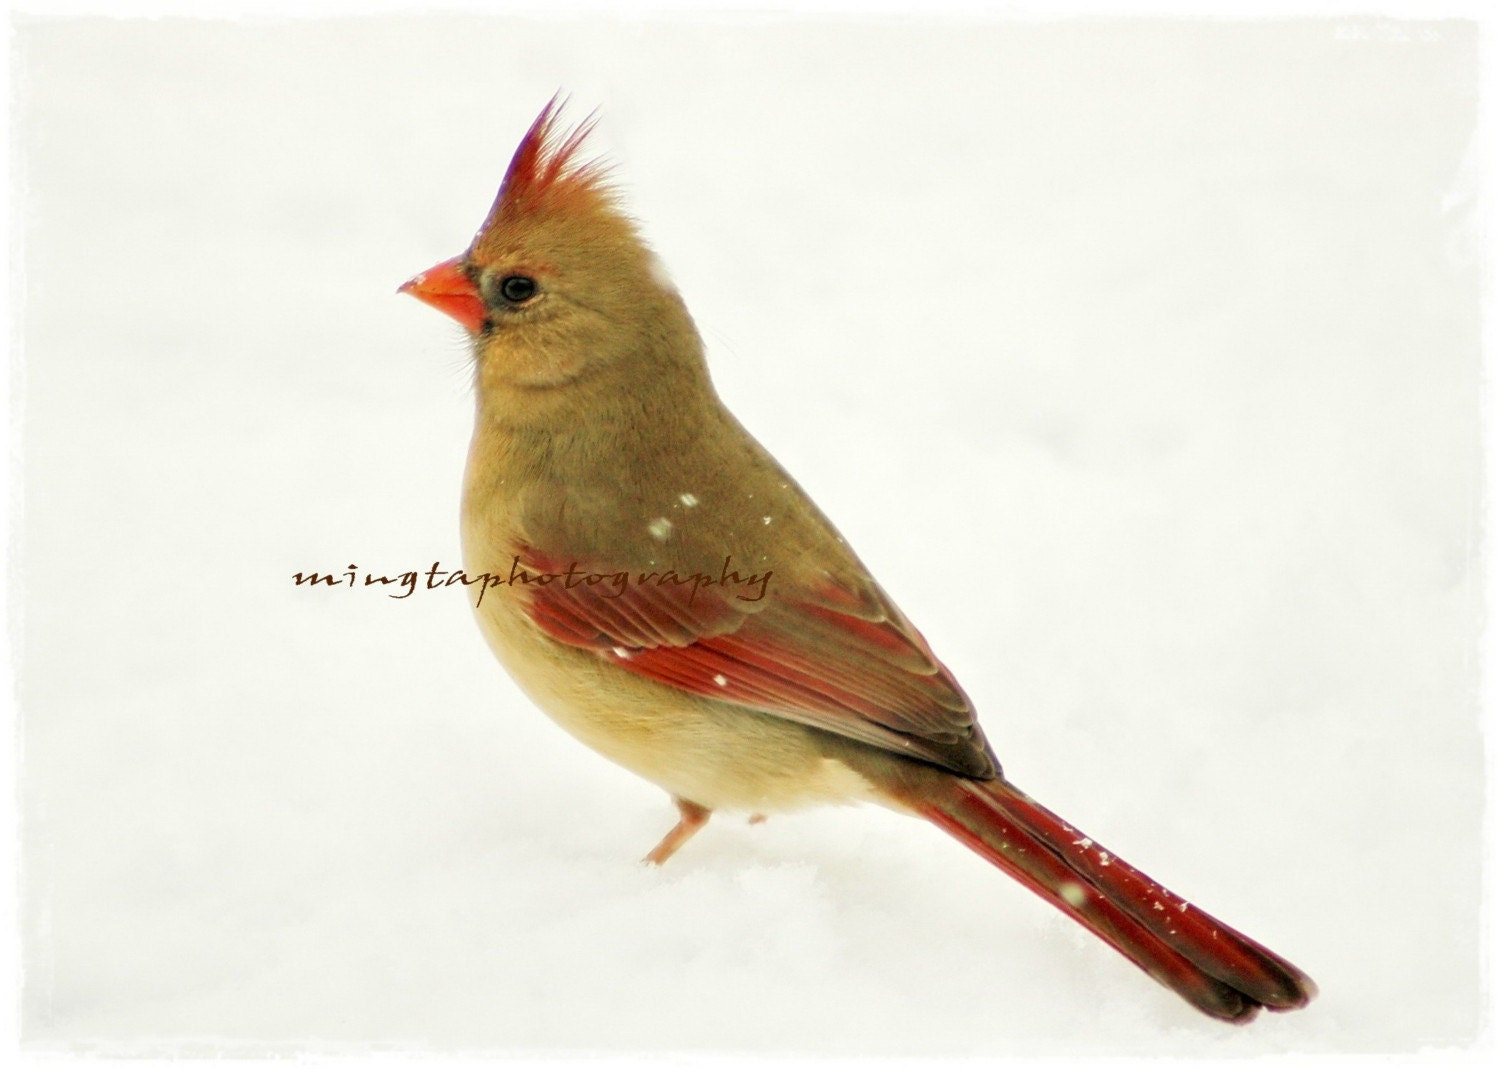 Smile - Female Cardinal In Snow Christmas decoration Cardinal in snow Red in snow For her female cardinal gift for mom Fine Art Print 5x7 - mingtaphotography